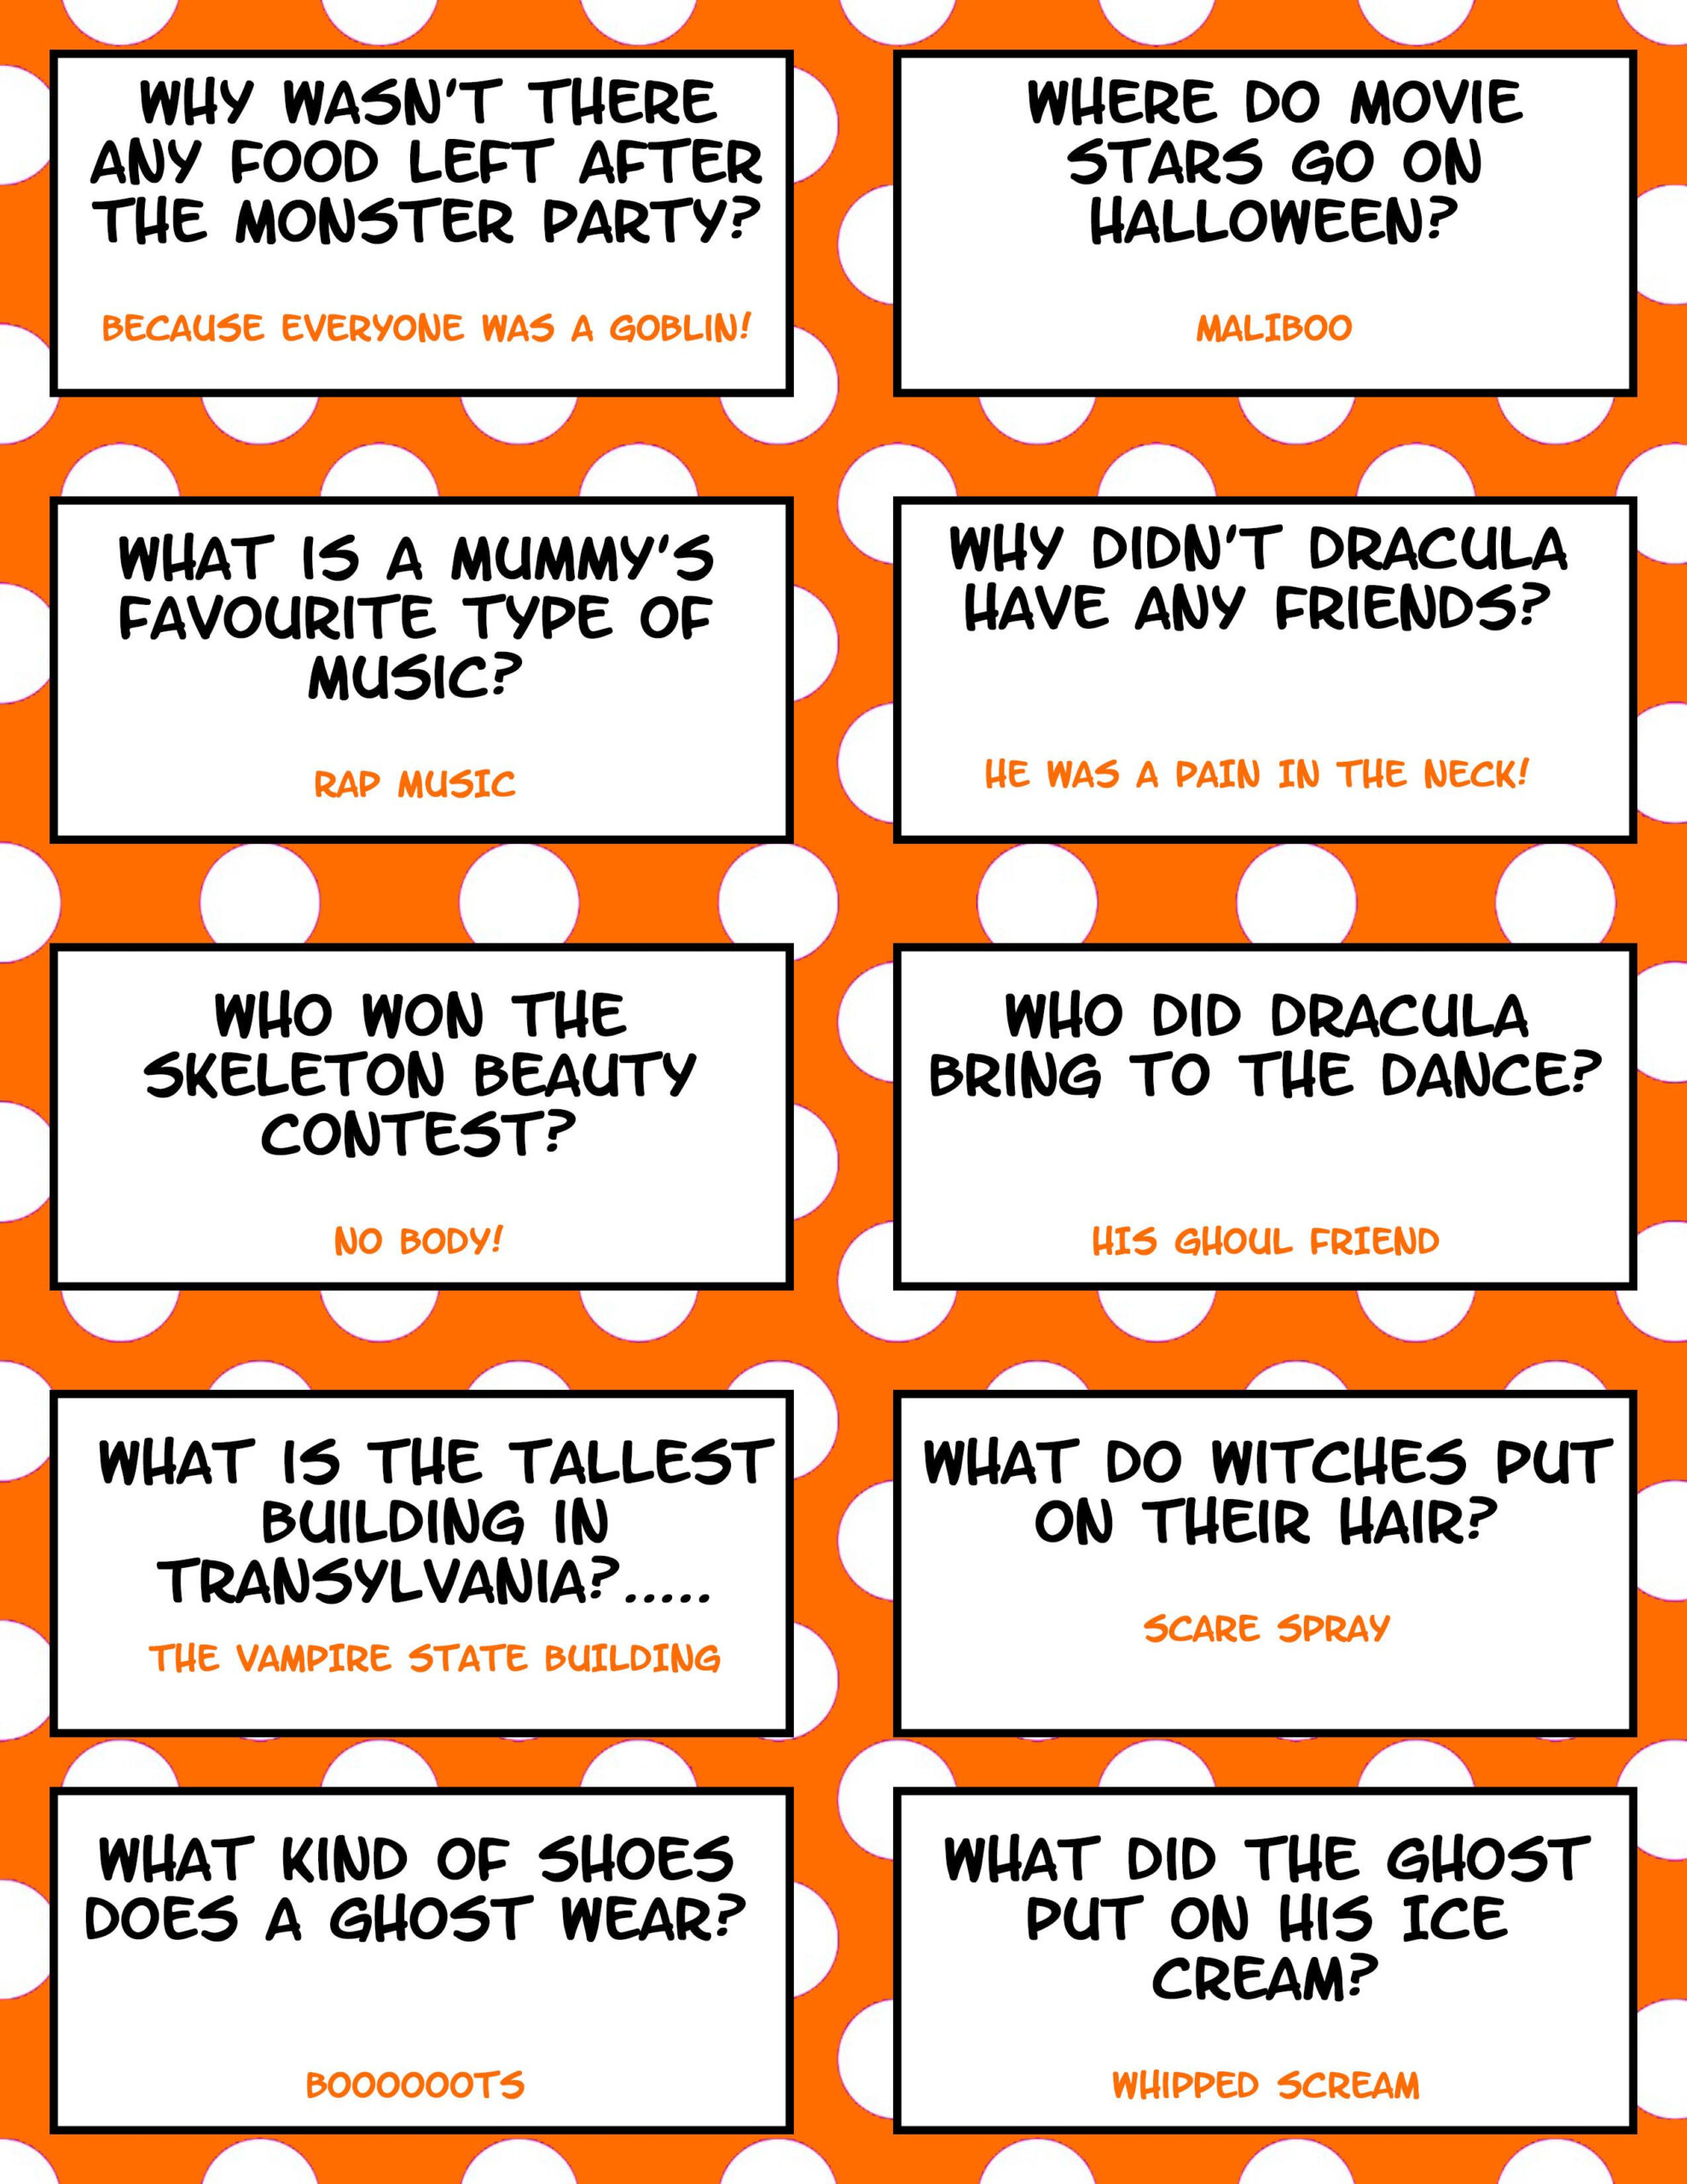 Halloween Riddles Worksheet For 5th Graders With Answers